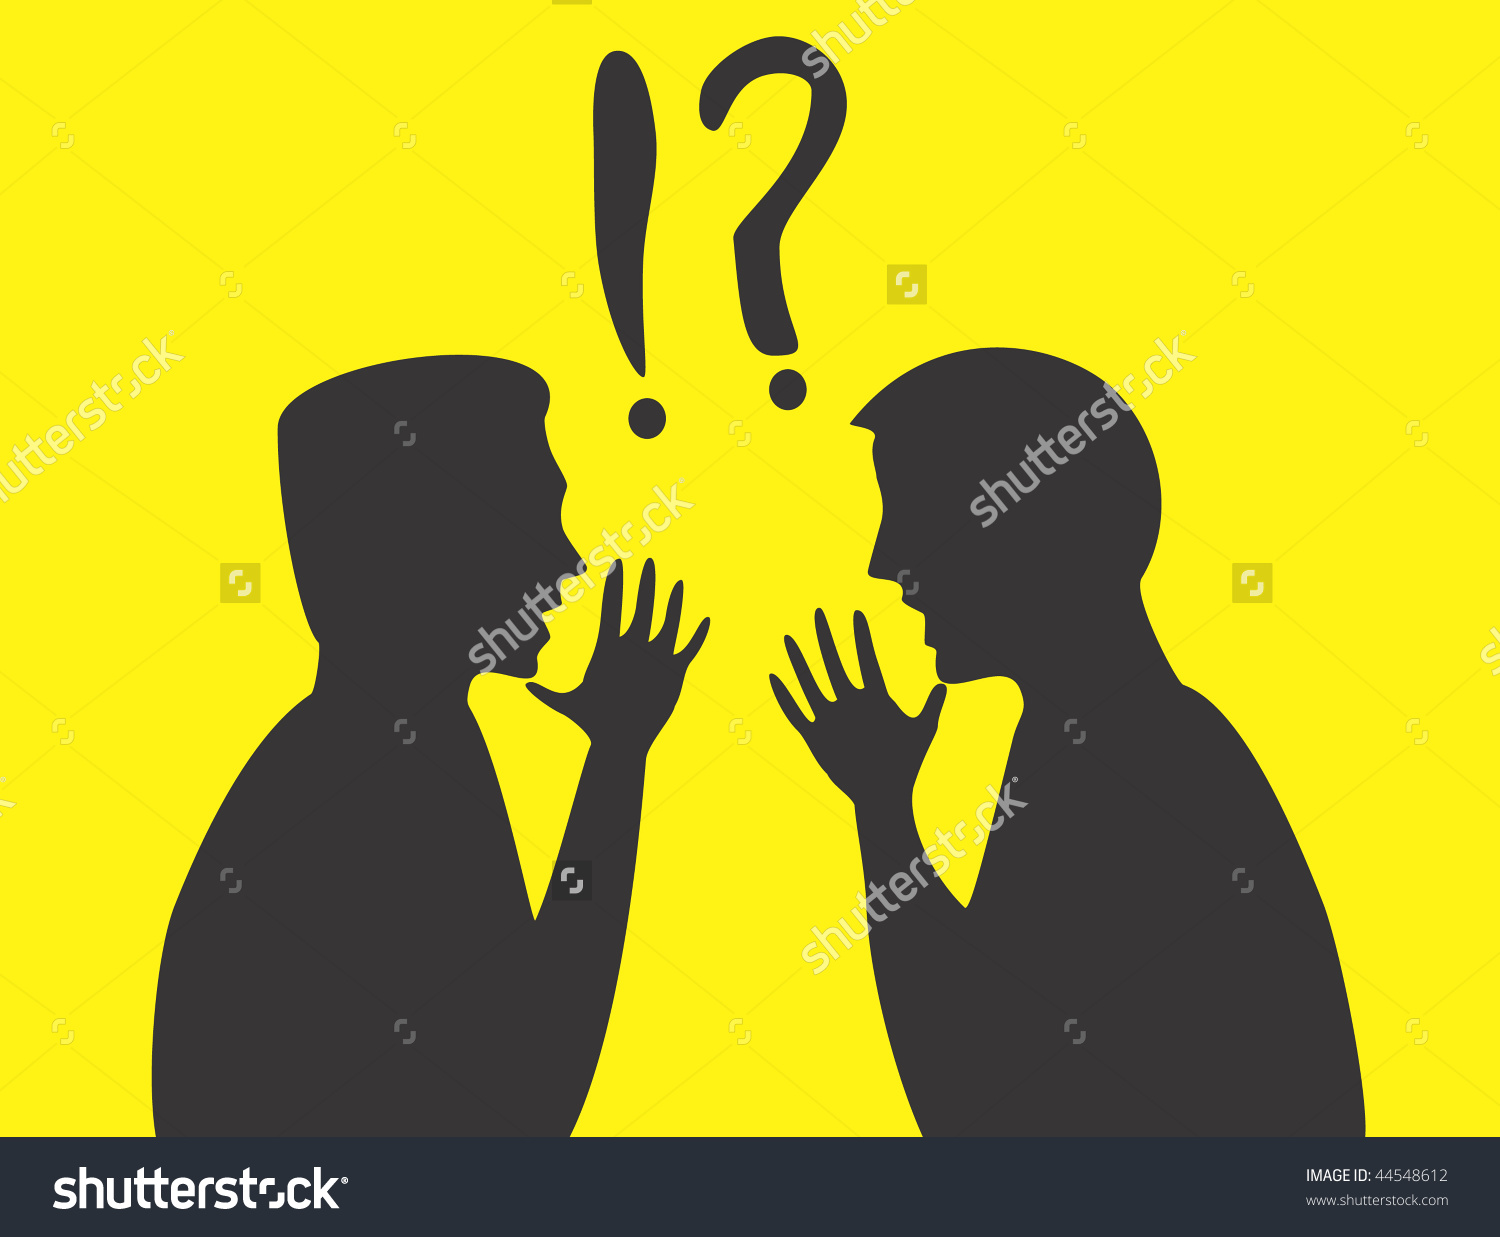 Silhouettes Two Arguing Men Stock Vector 44548612.